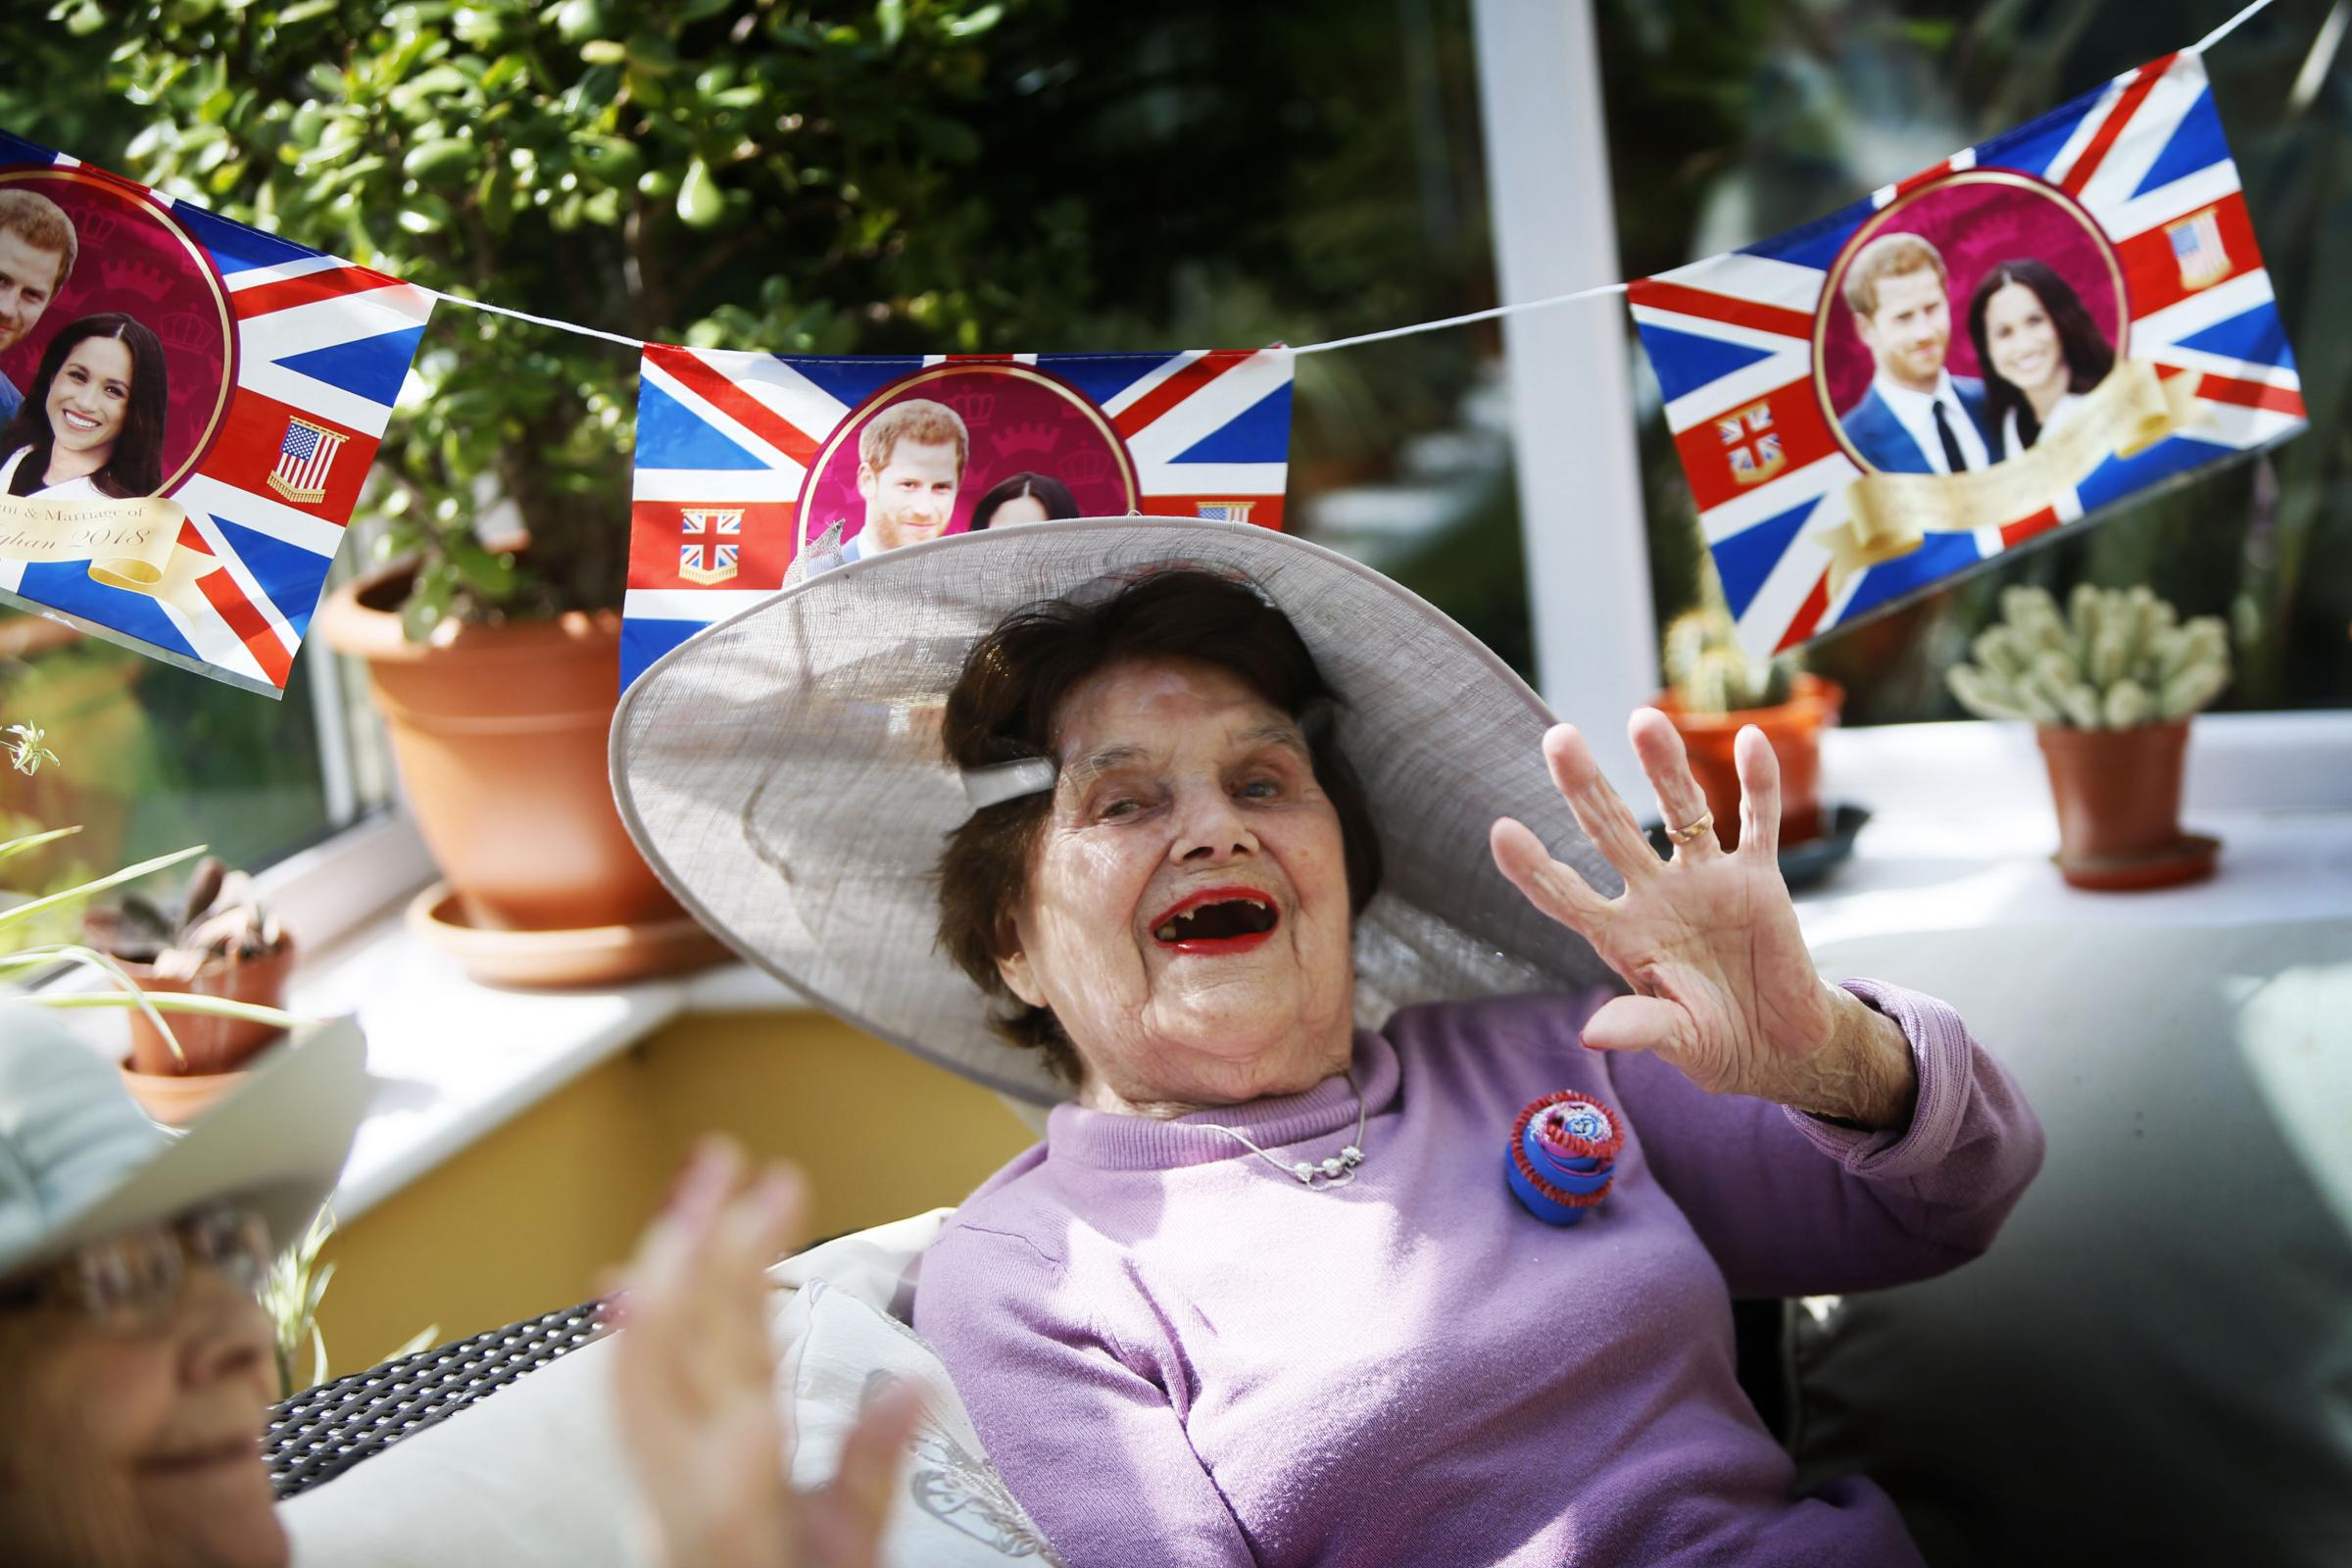 Residents at the Wantage Nursing home celebrating the royal wedding. 